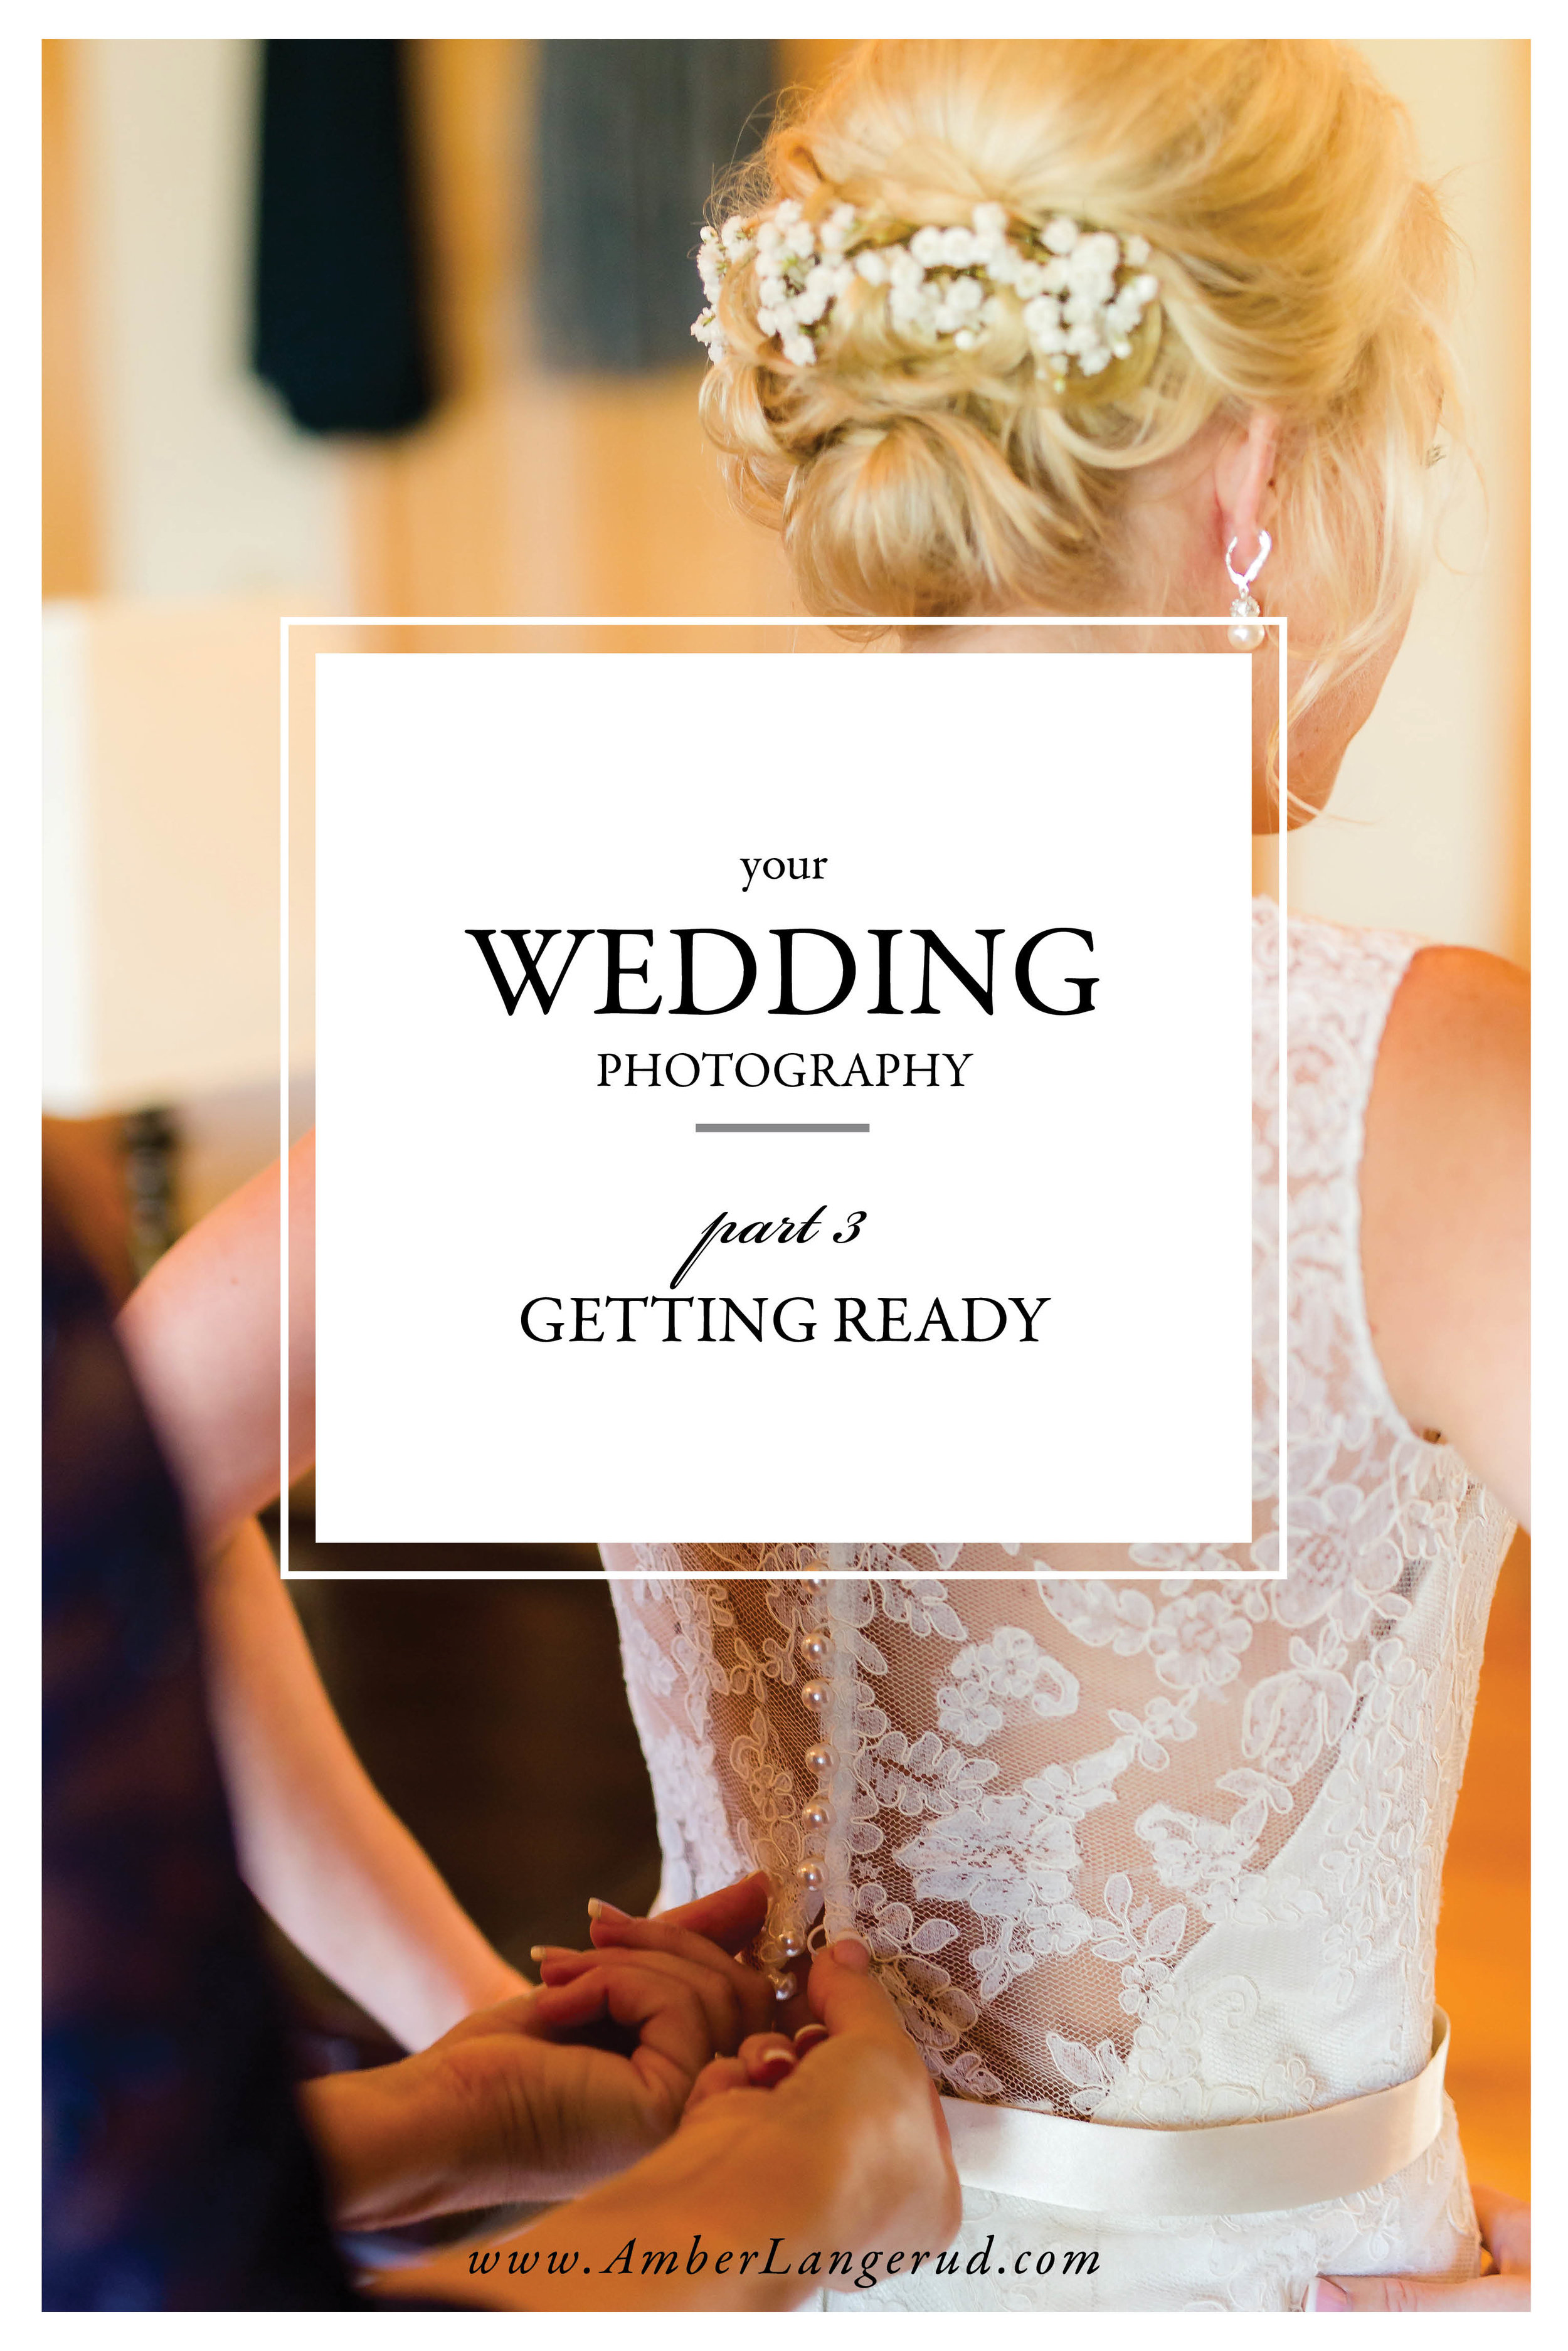 Your Wedding from a Photographer's Perspective Part 3: Getting Ready by Amber Langerud Photography out of Audubon, MN